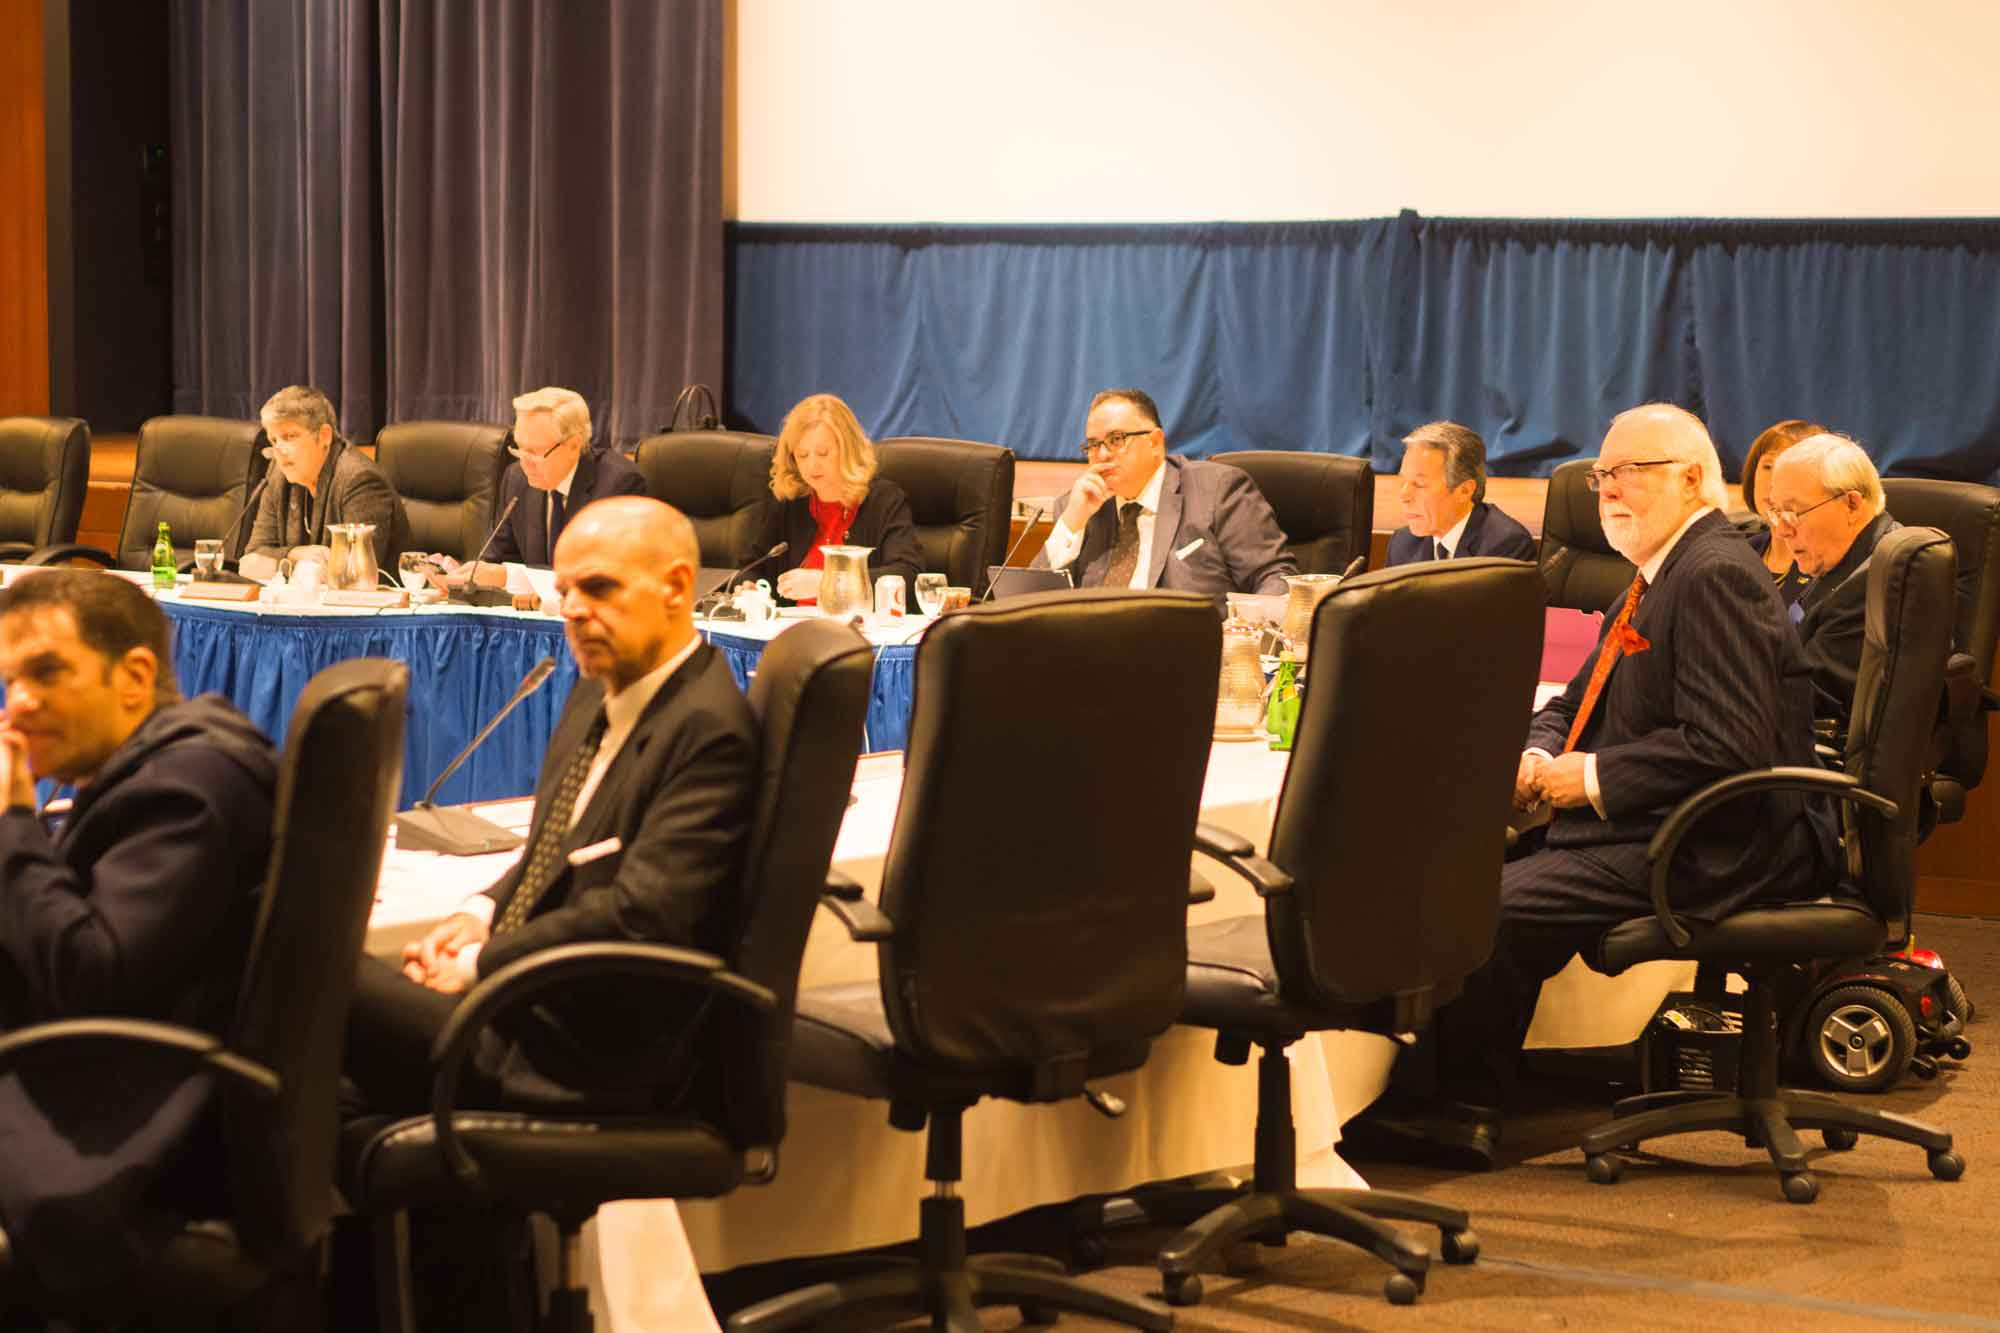 Regents Table Tuition Increase